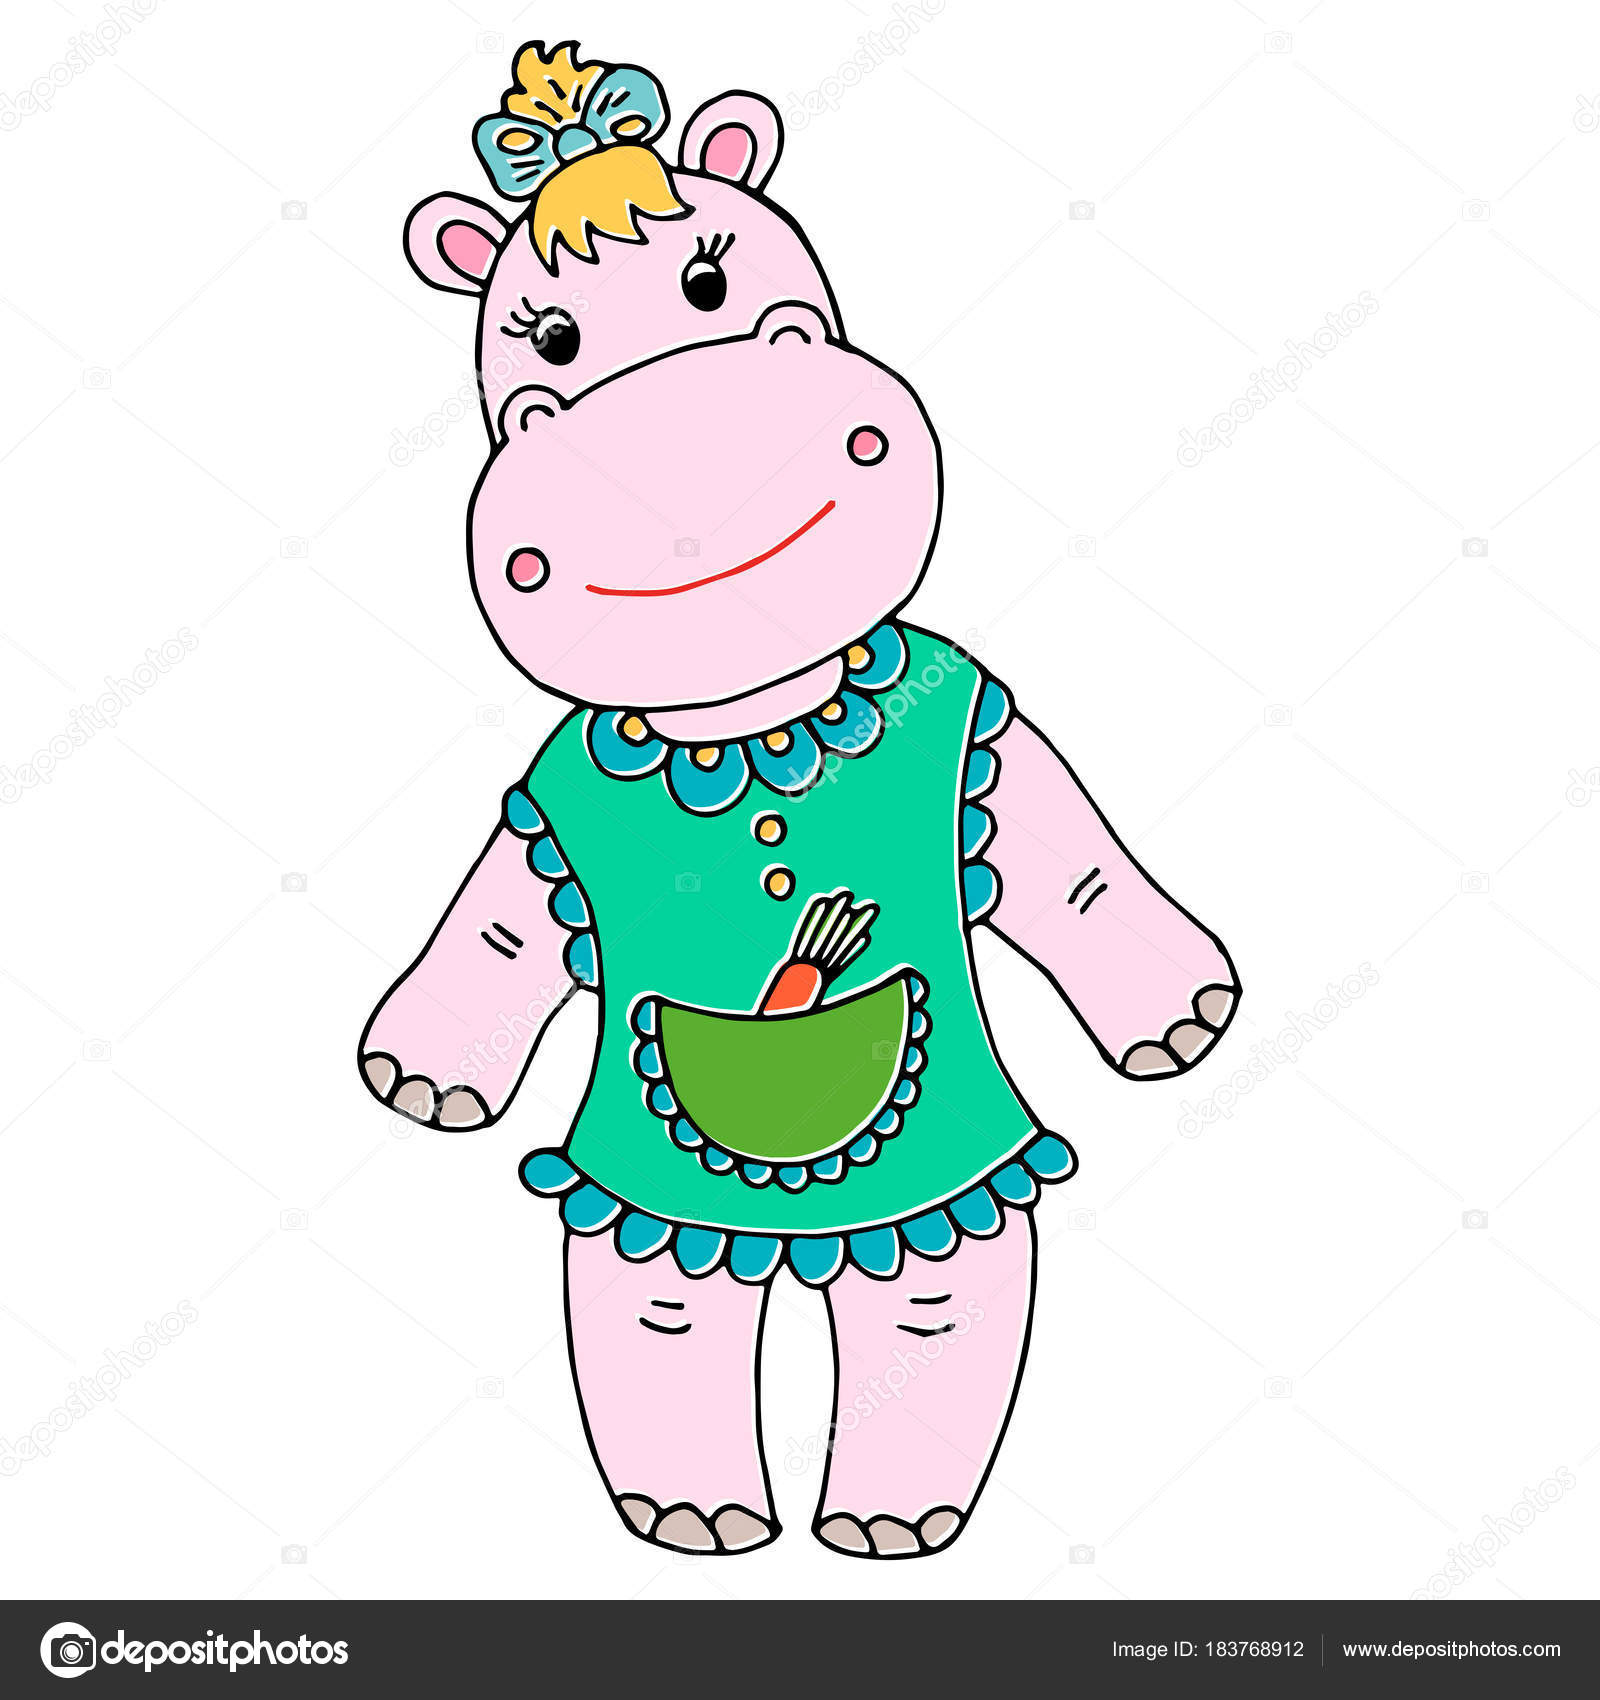 Cute Baby Hippo Girl Cartoon Hand Drawn Illustration Can Be Used